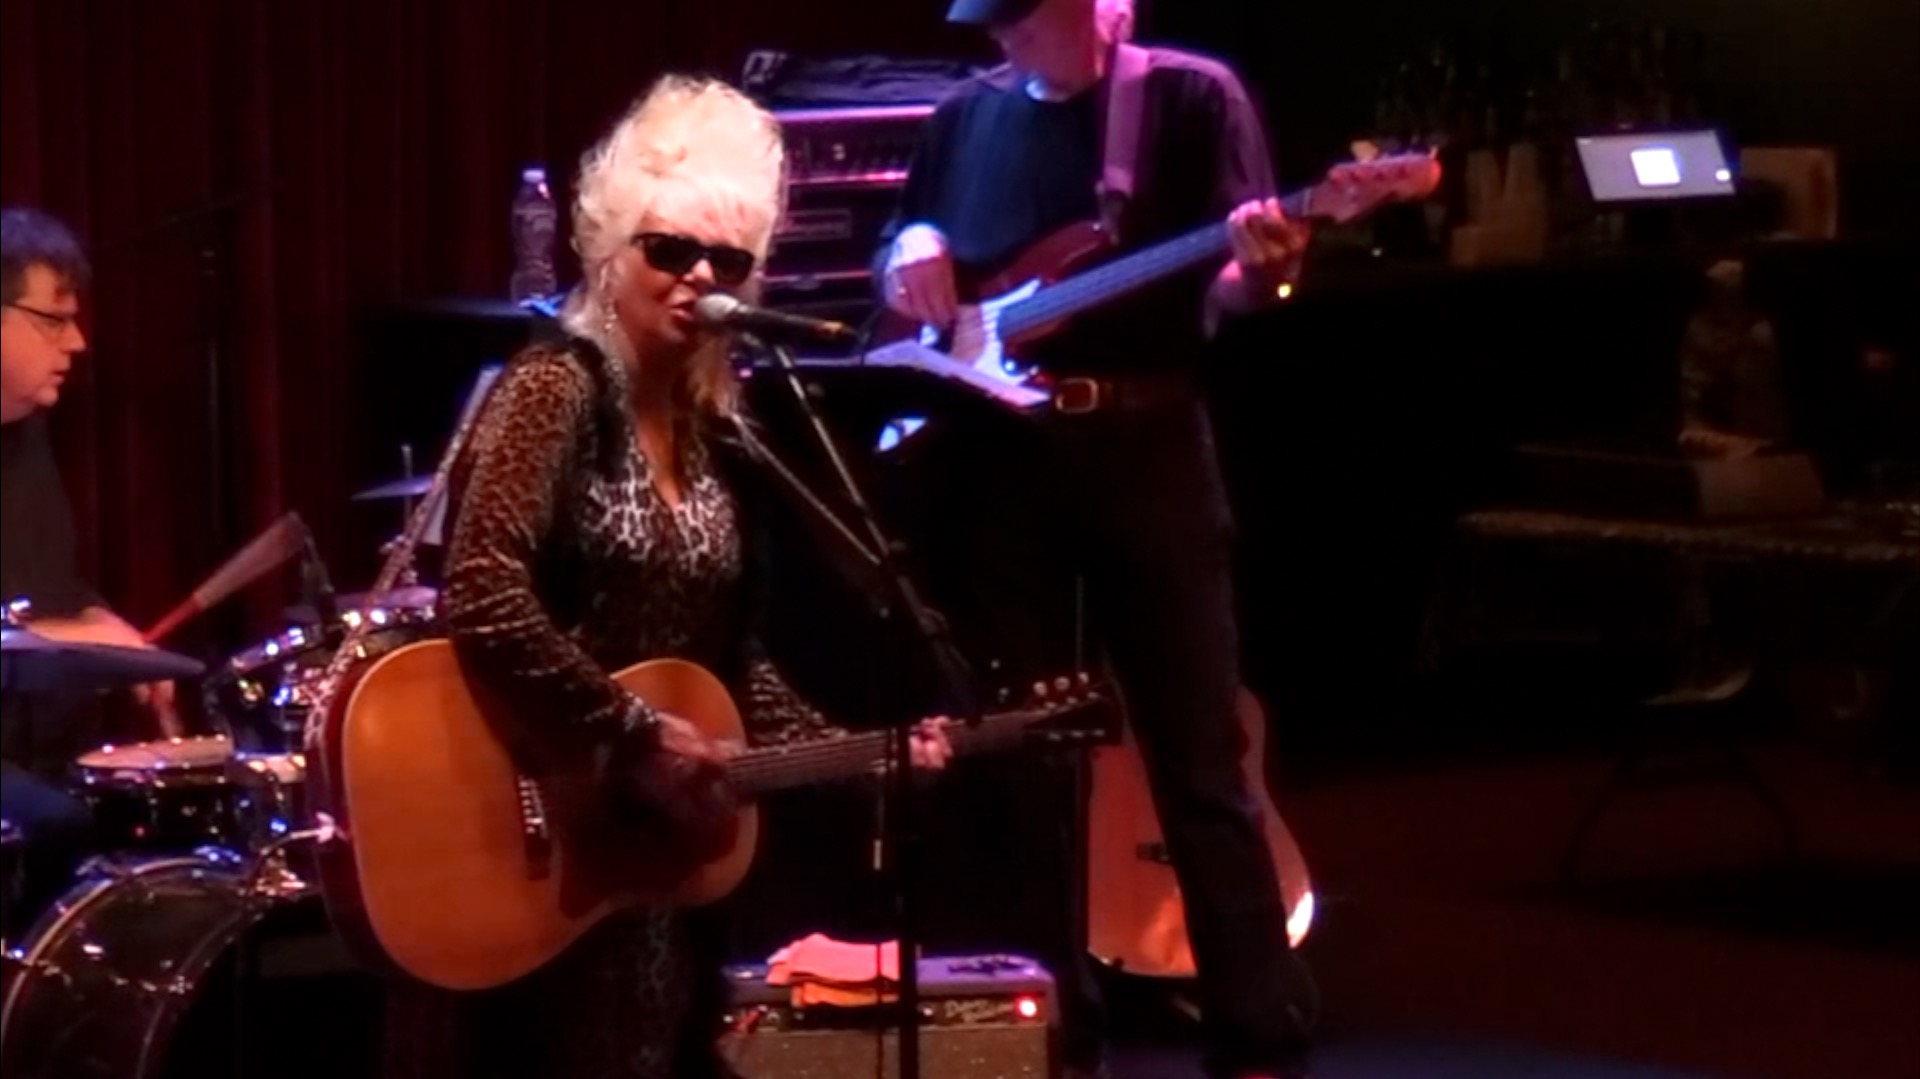 Christine Ohlman and Cliff Goodwin Knick 2018 00